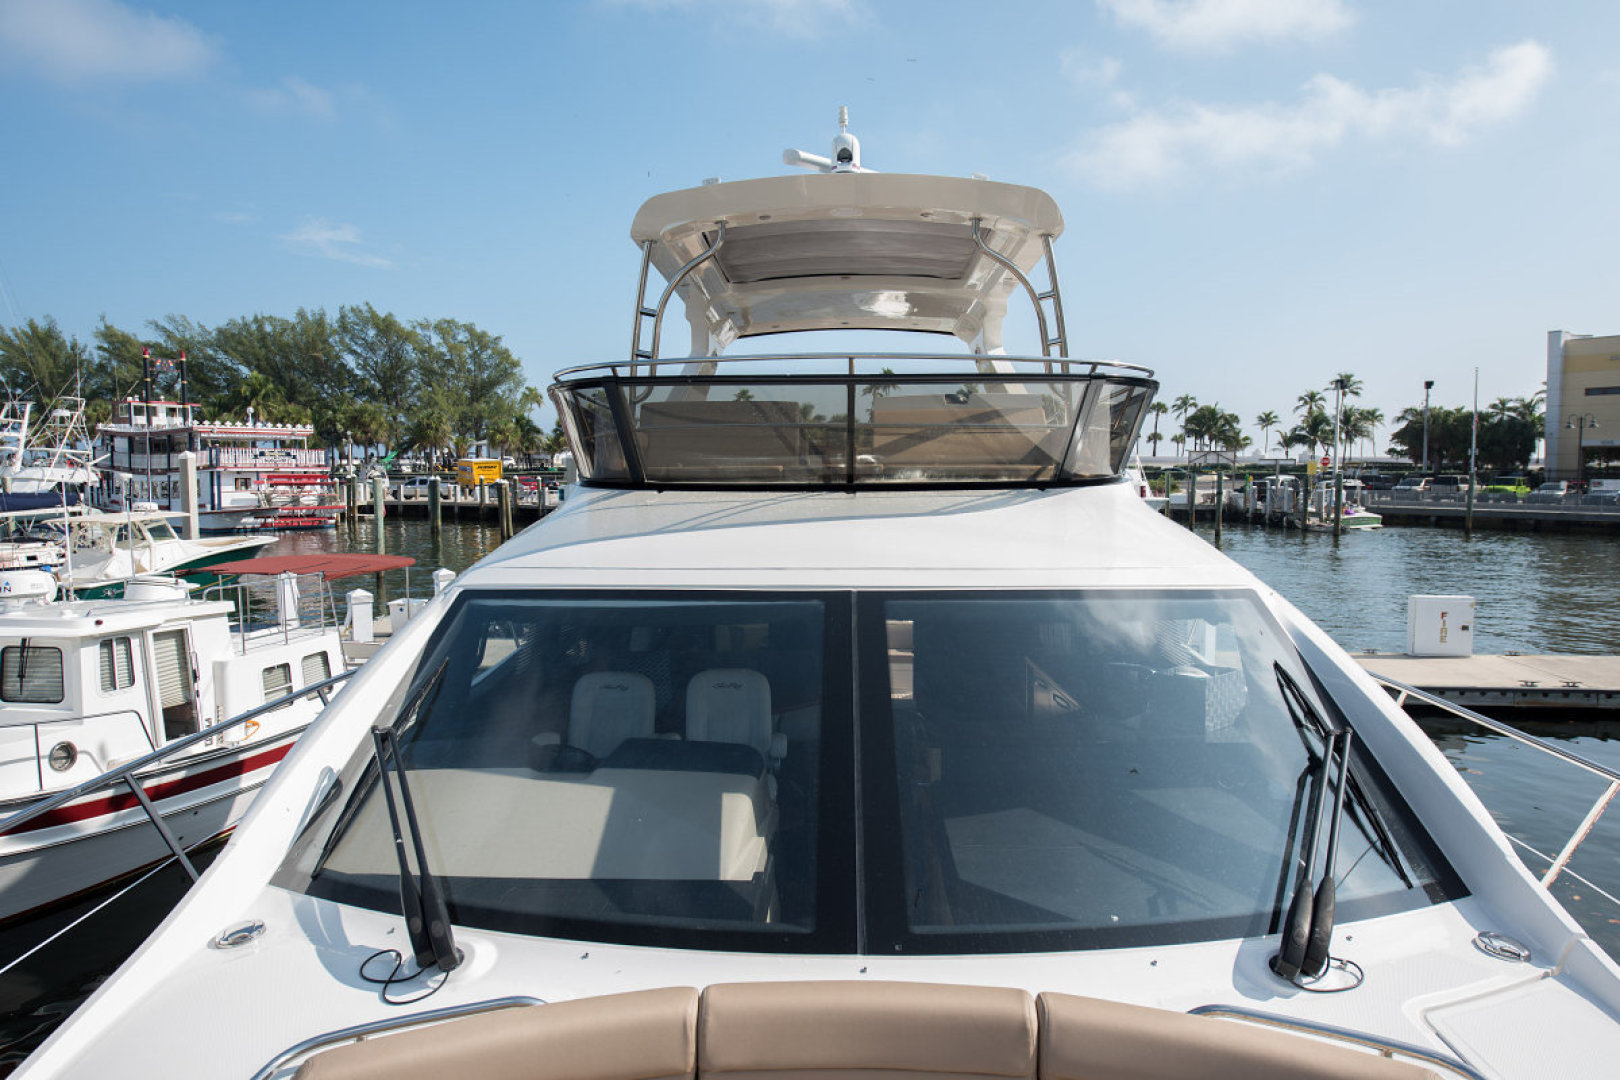 Sea Ray-L590 Fly 2016-2016 Sea Ray L590 Fly Ft. Lauderdale-Florida-United States-1284616 | Thumbnail